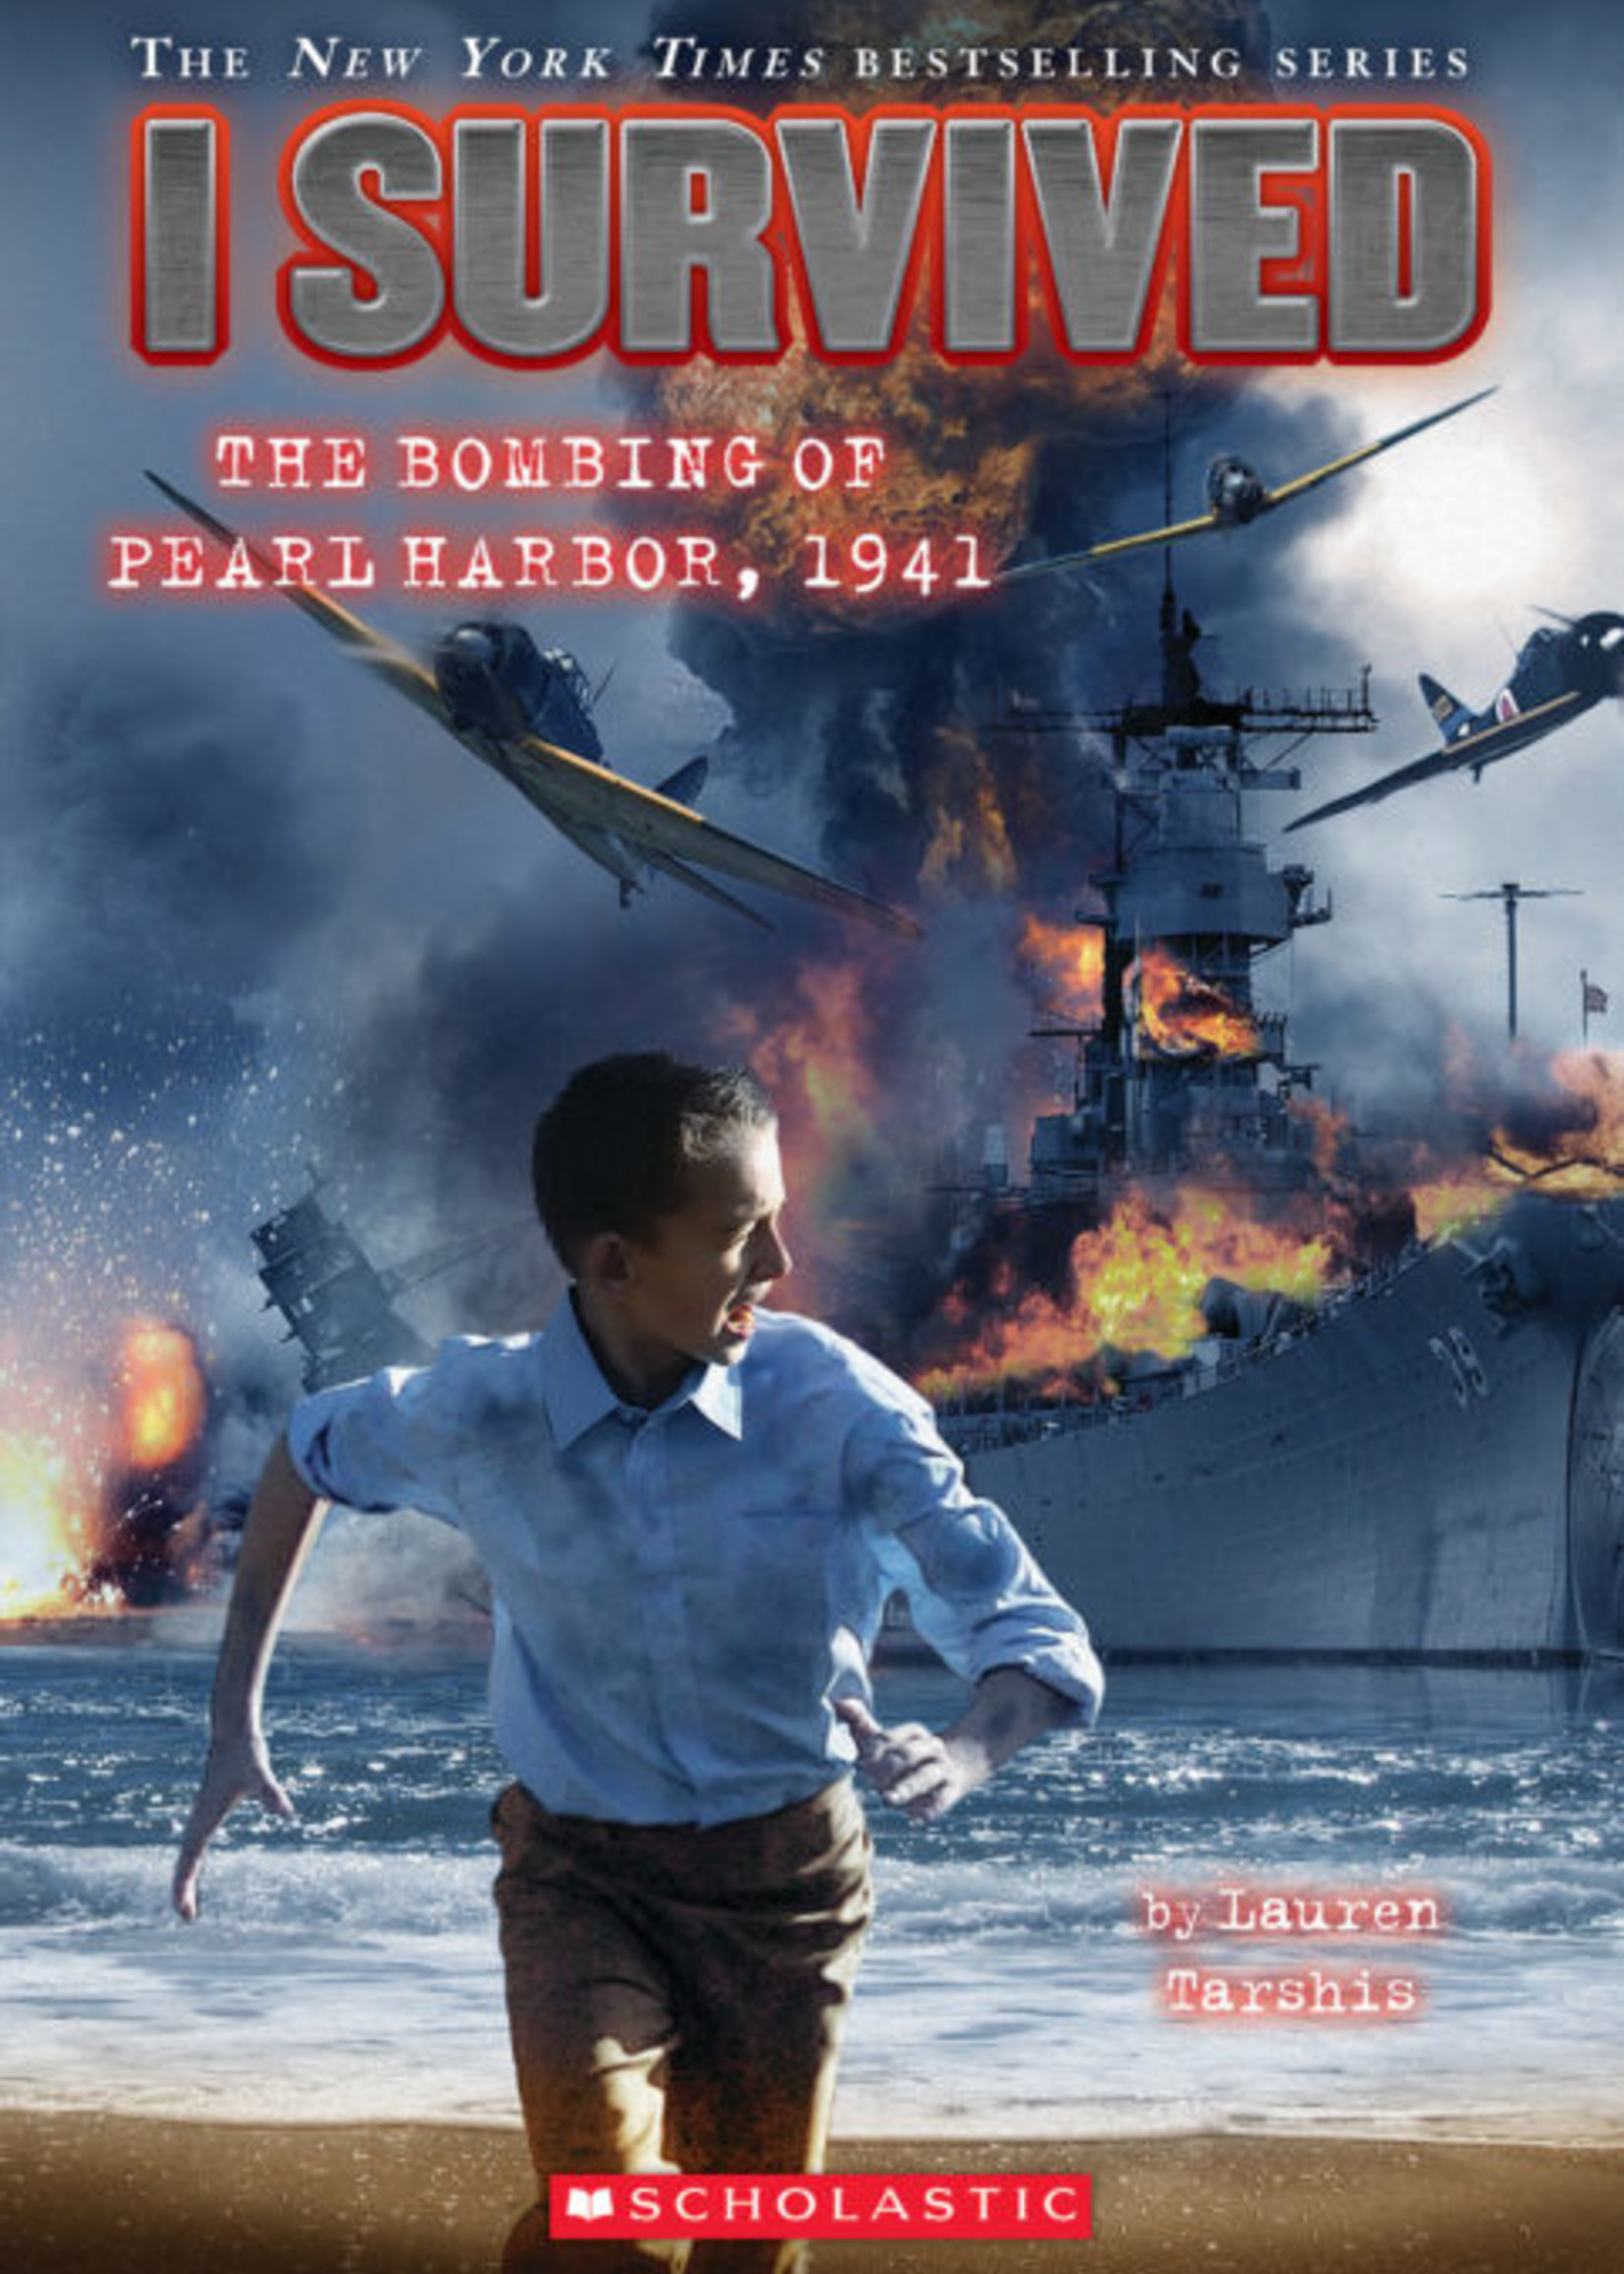 I Survived #04, I Survived The Bombing of Pearl Harbor, 1941 - Paperback